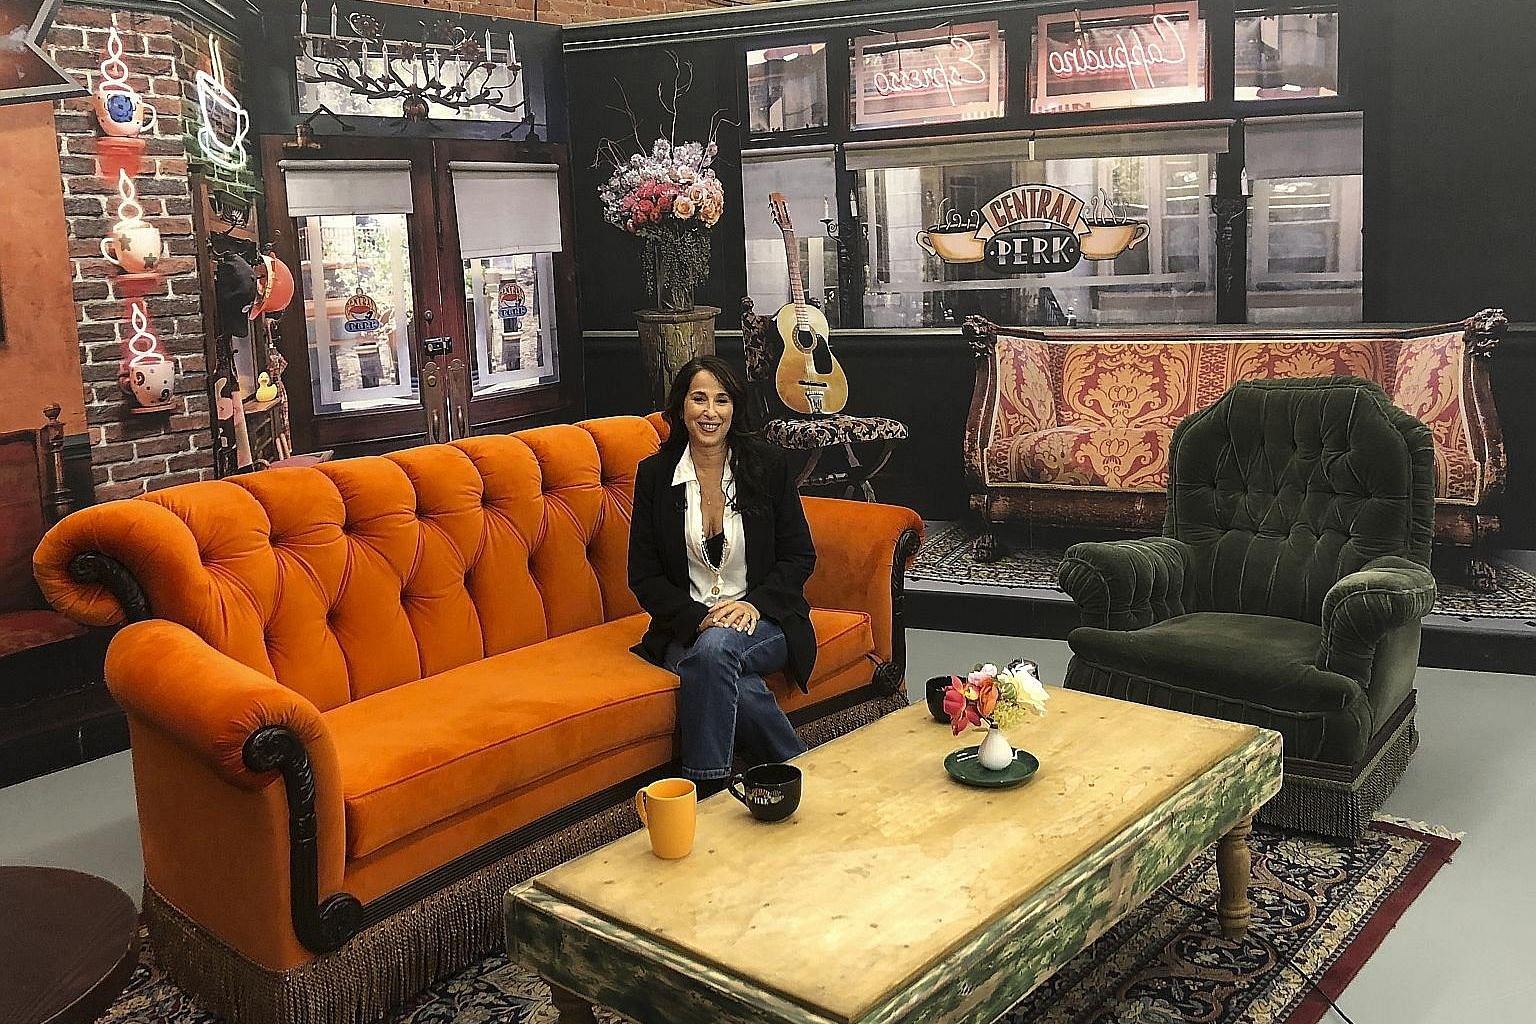 Maggie Wheeler, who played Janice, the character with the annoying nasal laugh on the sitcom Friends, posing at a replica of the Central Perk set at the exhibition.